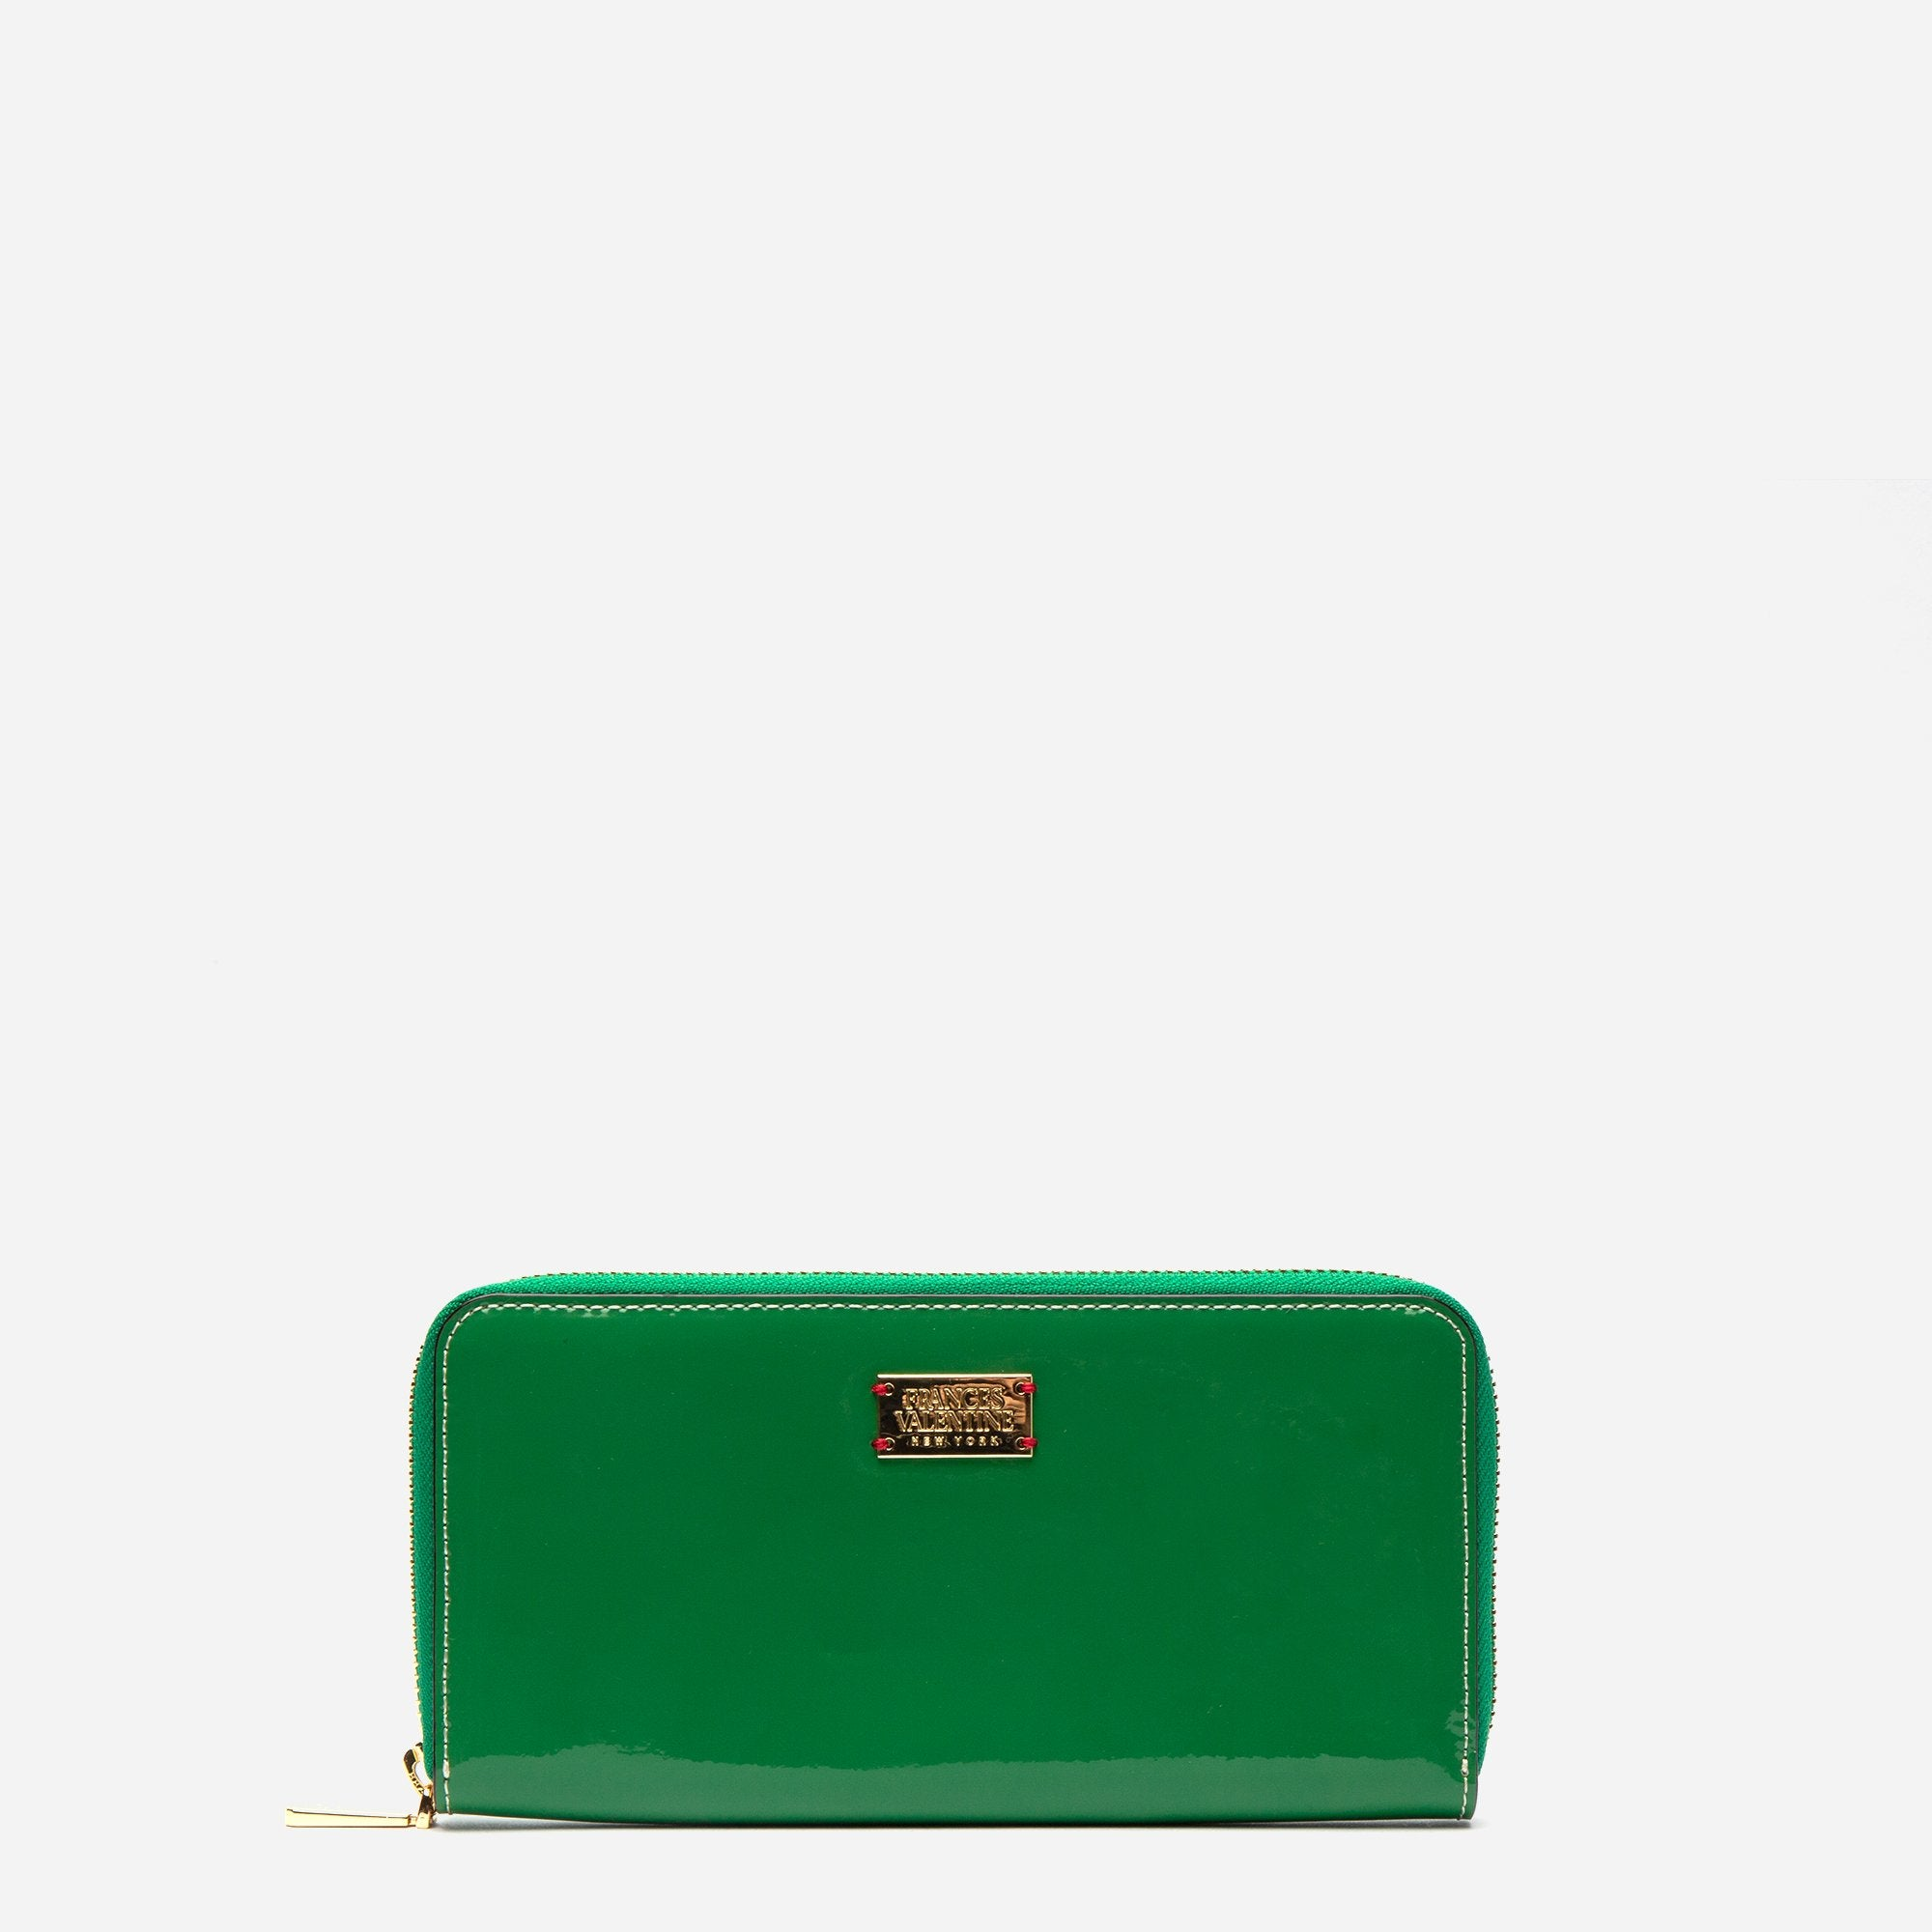 Washington Zip Wallet Soft Patent Green Yellow - Frances Valentine